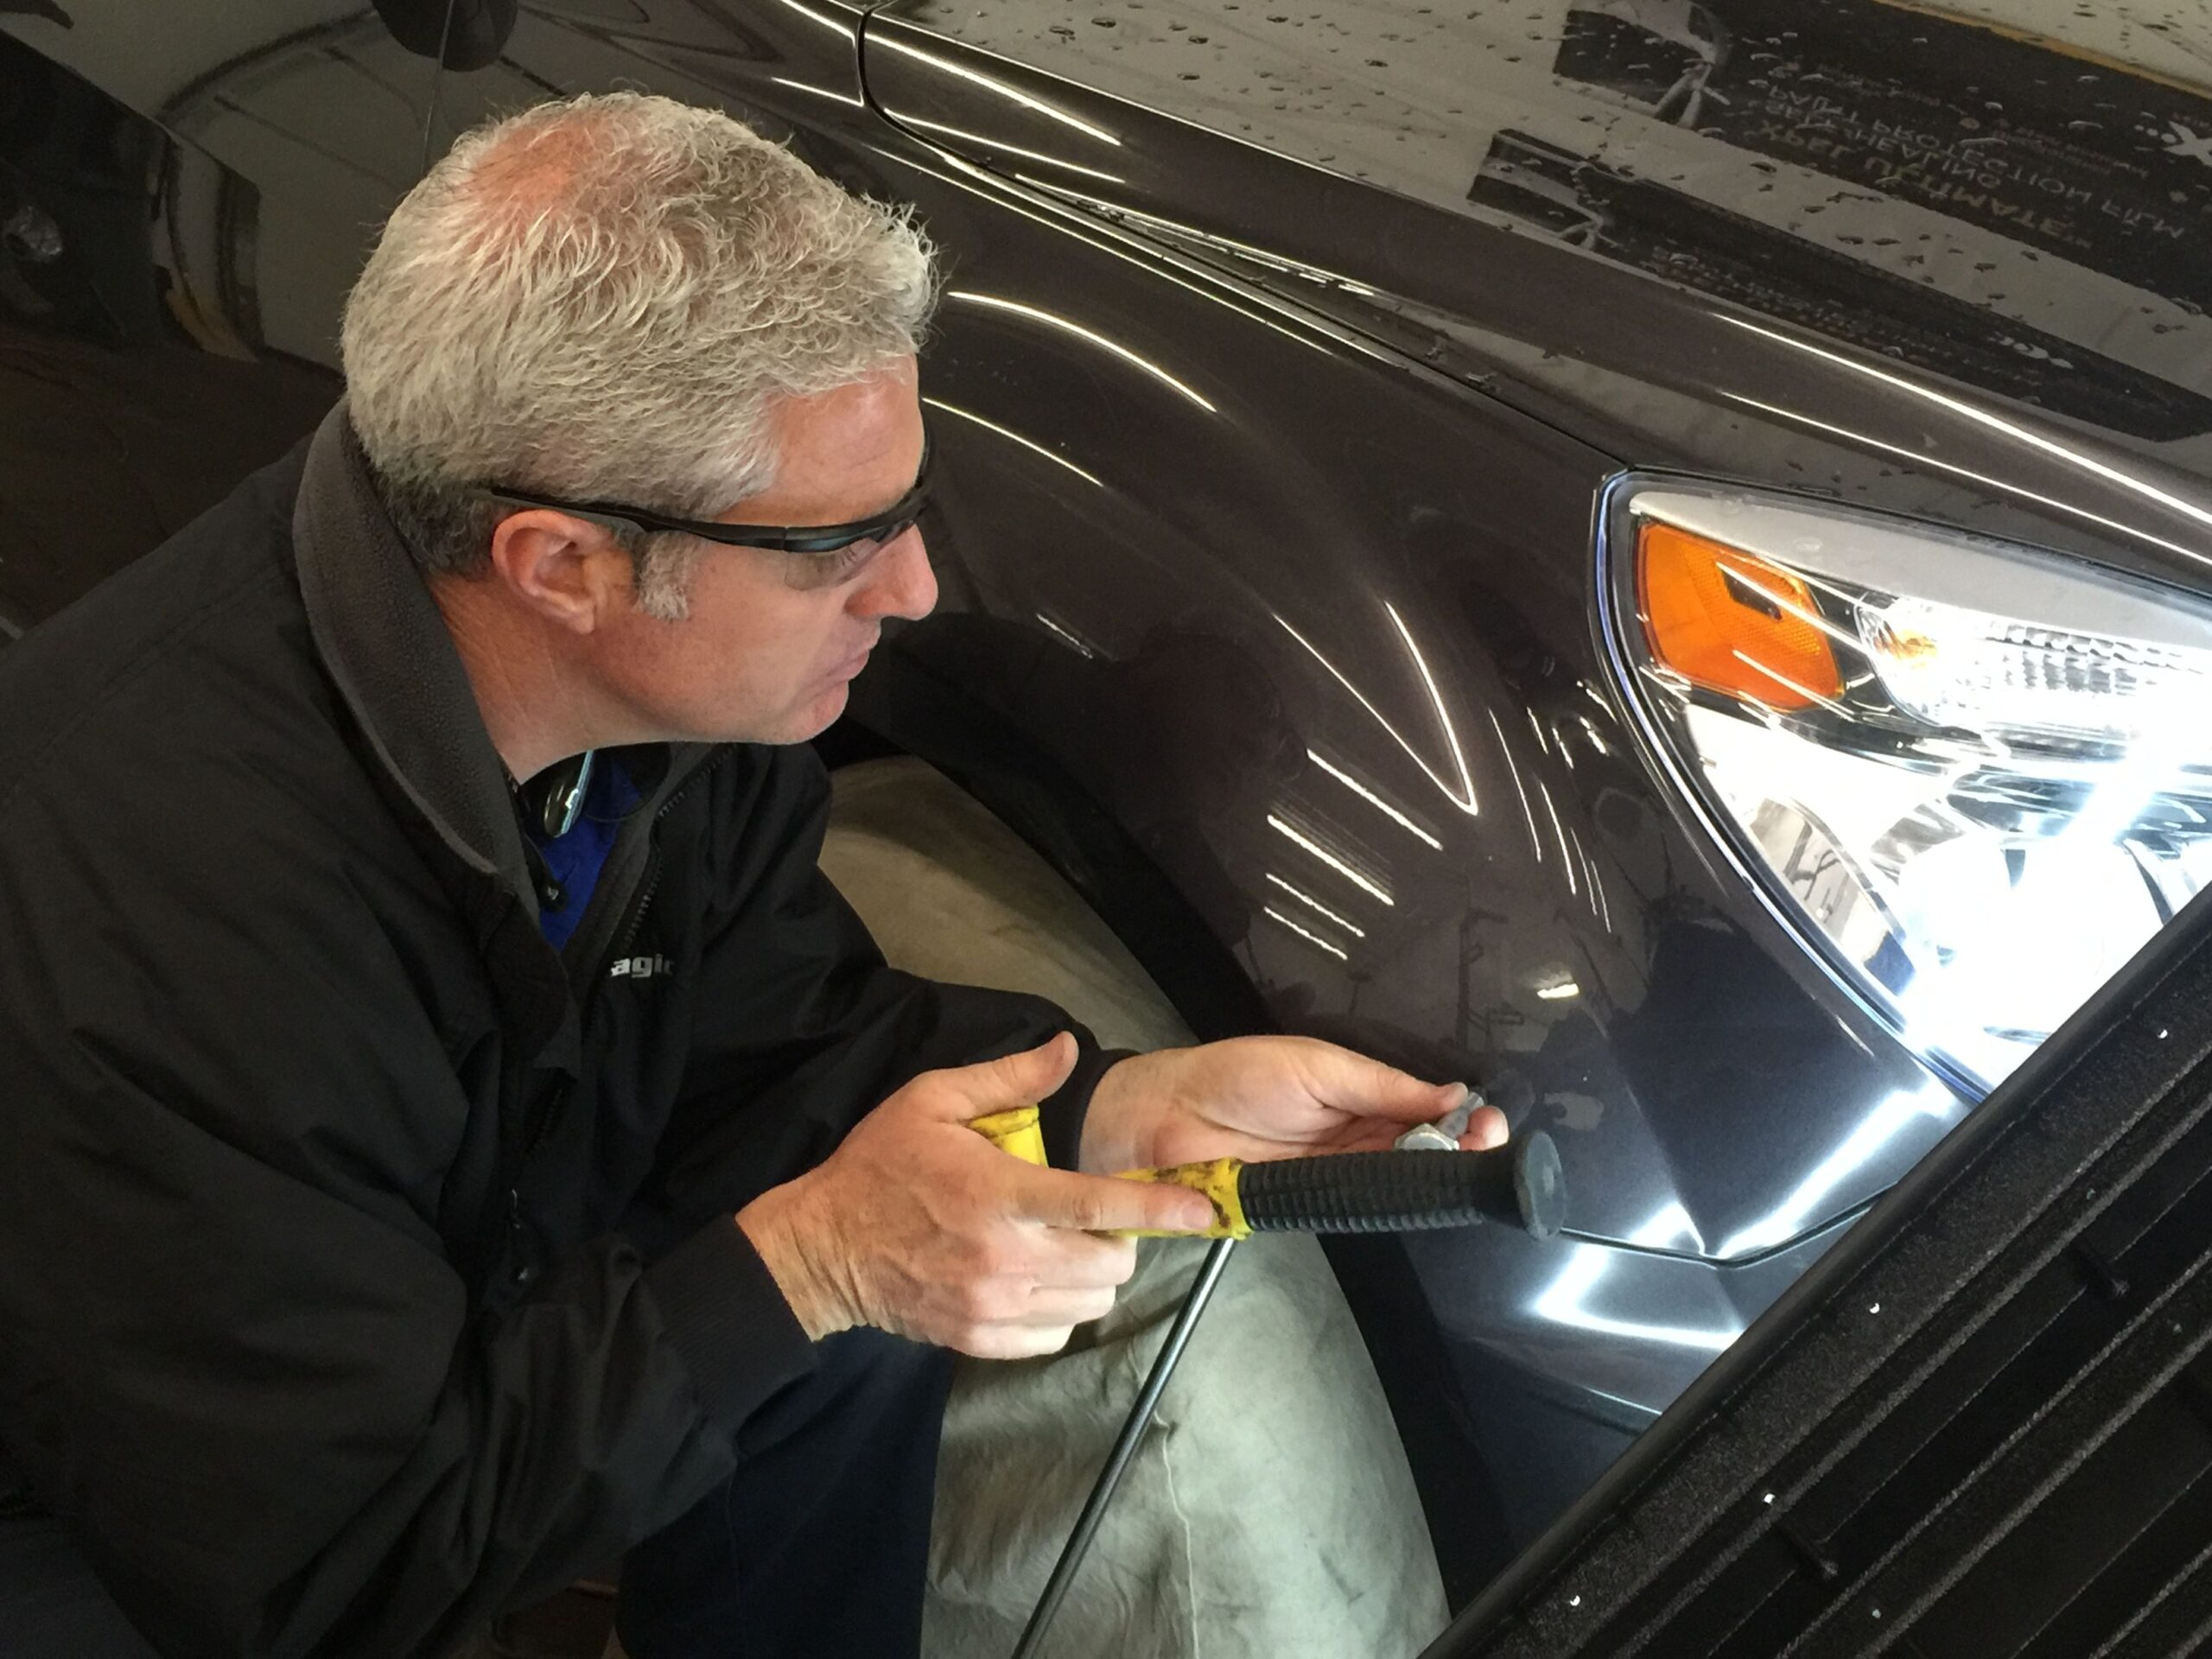 Paintless Dent Repair at Pro Auto Spa in Colorado Springs